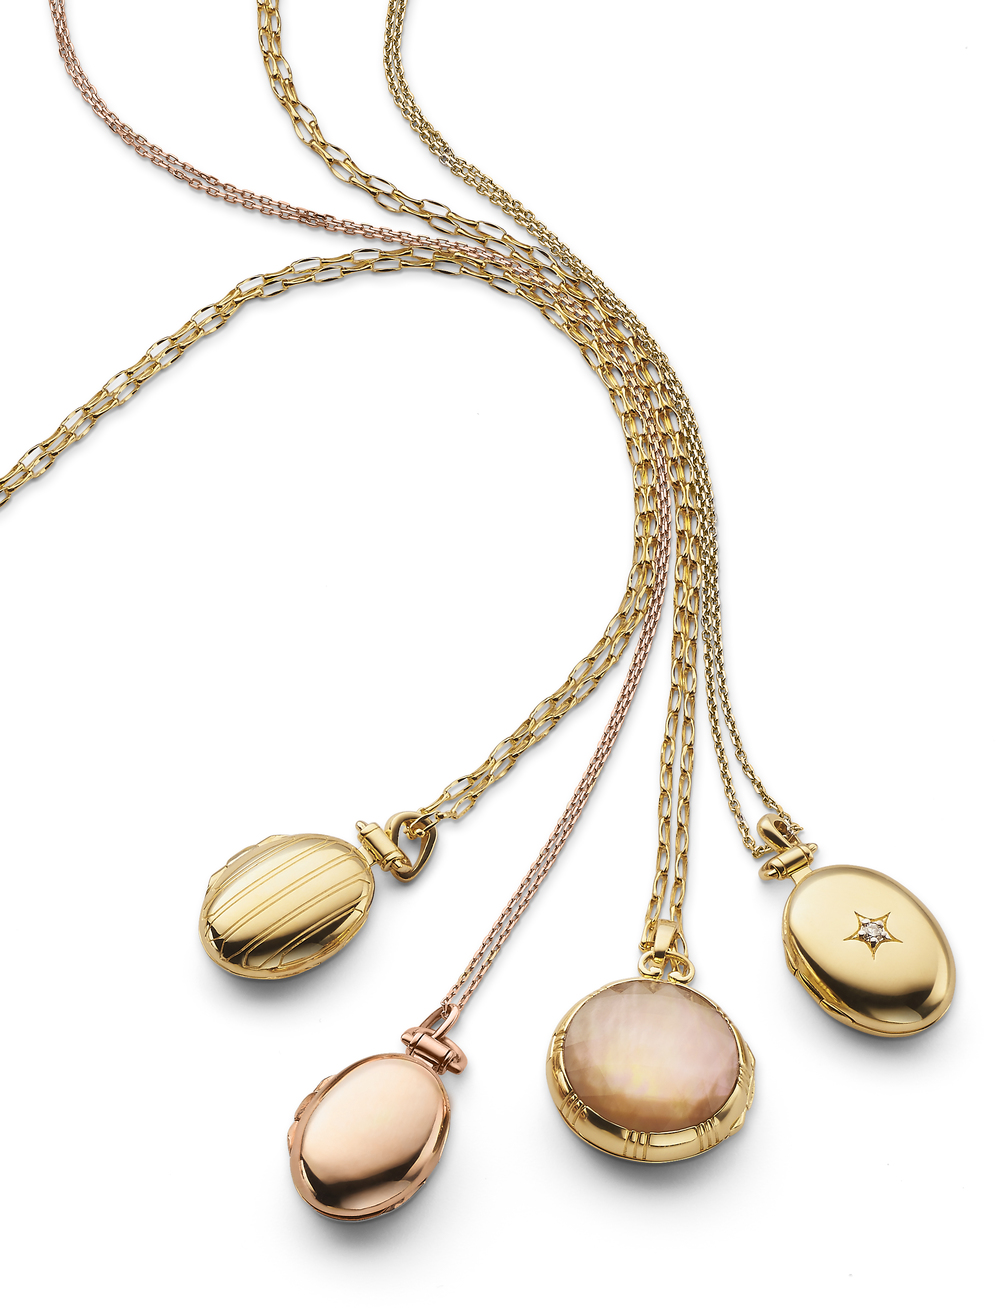 Classic rose and yellow gold lockets.